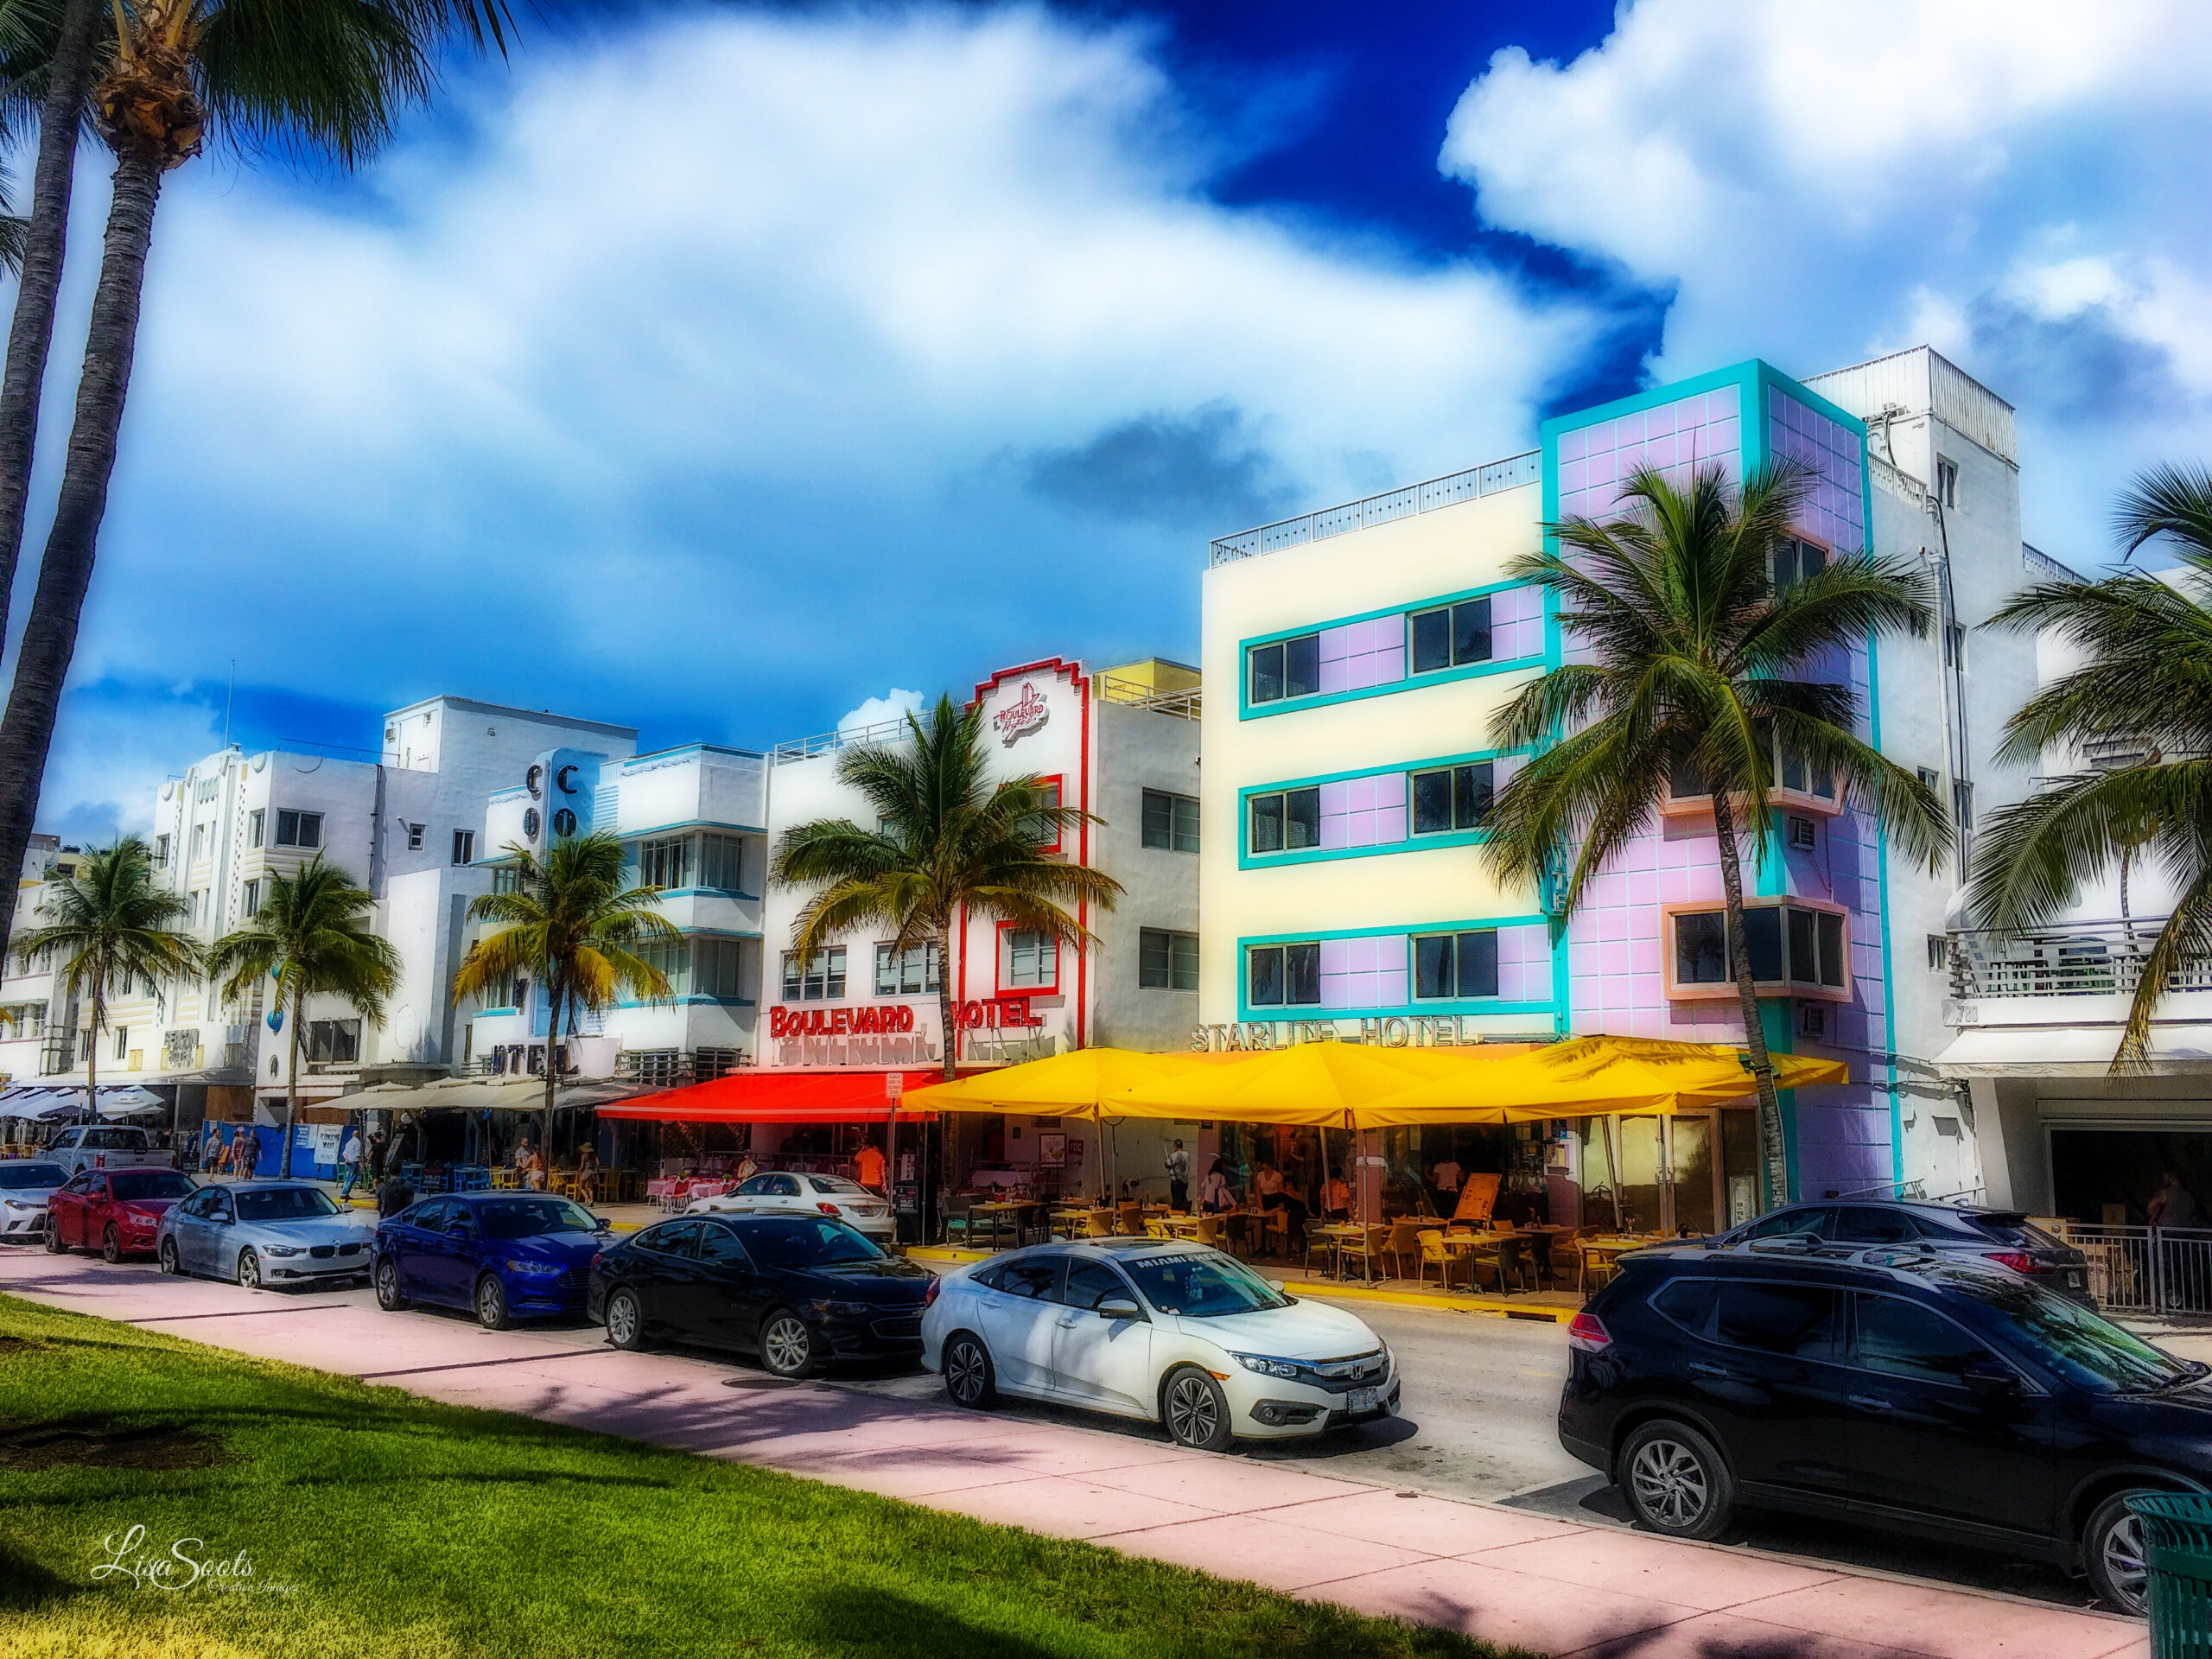 Miami Beach, Florida – Magnificent Photos to Inspire Your Wanderlust